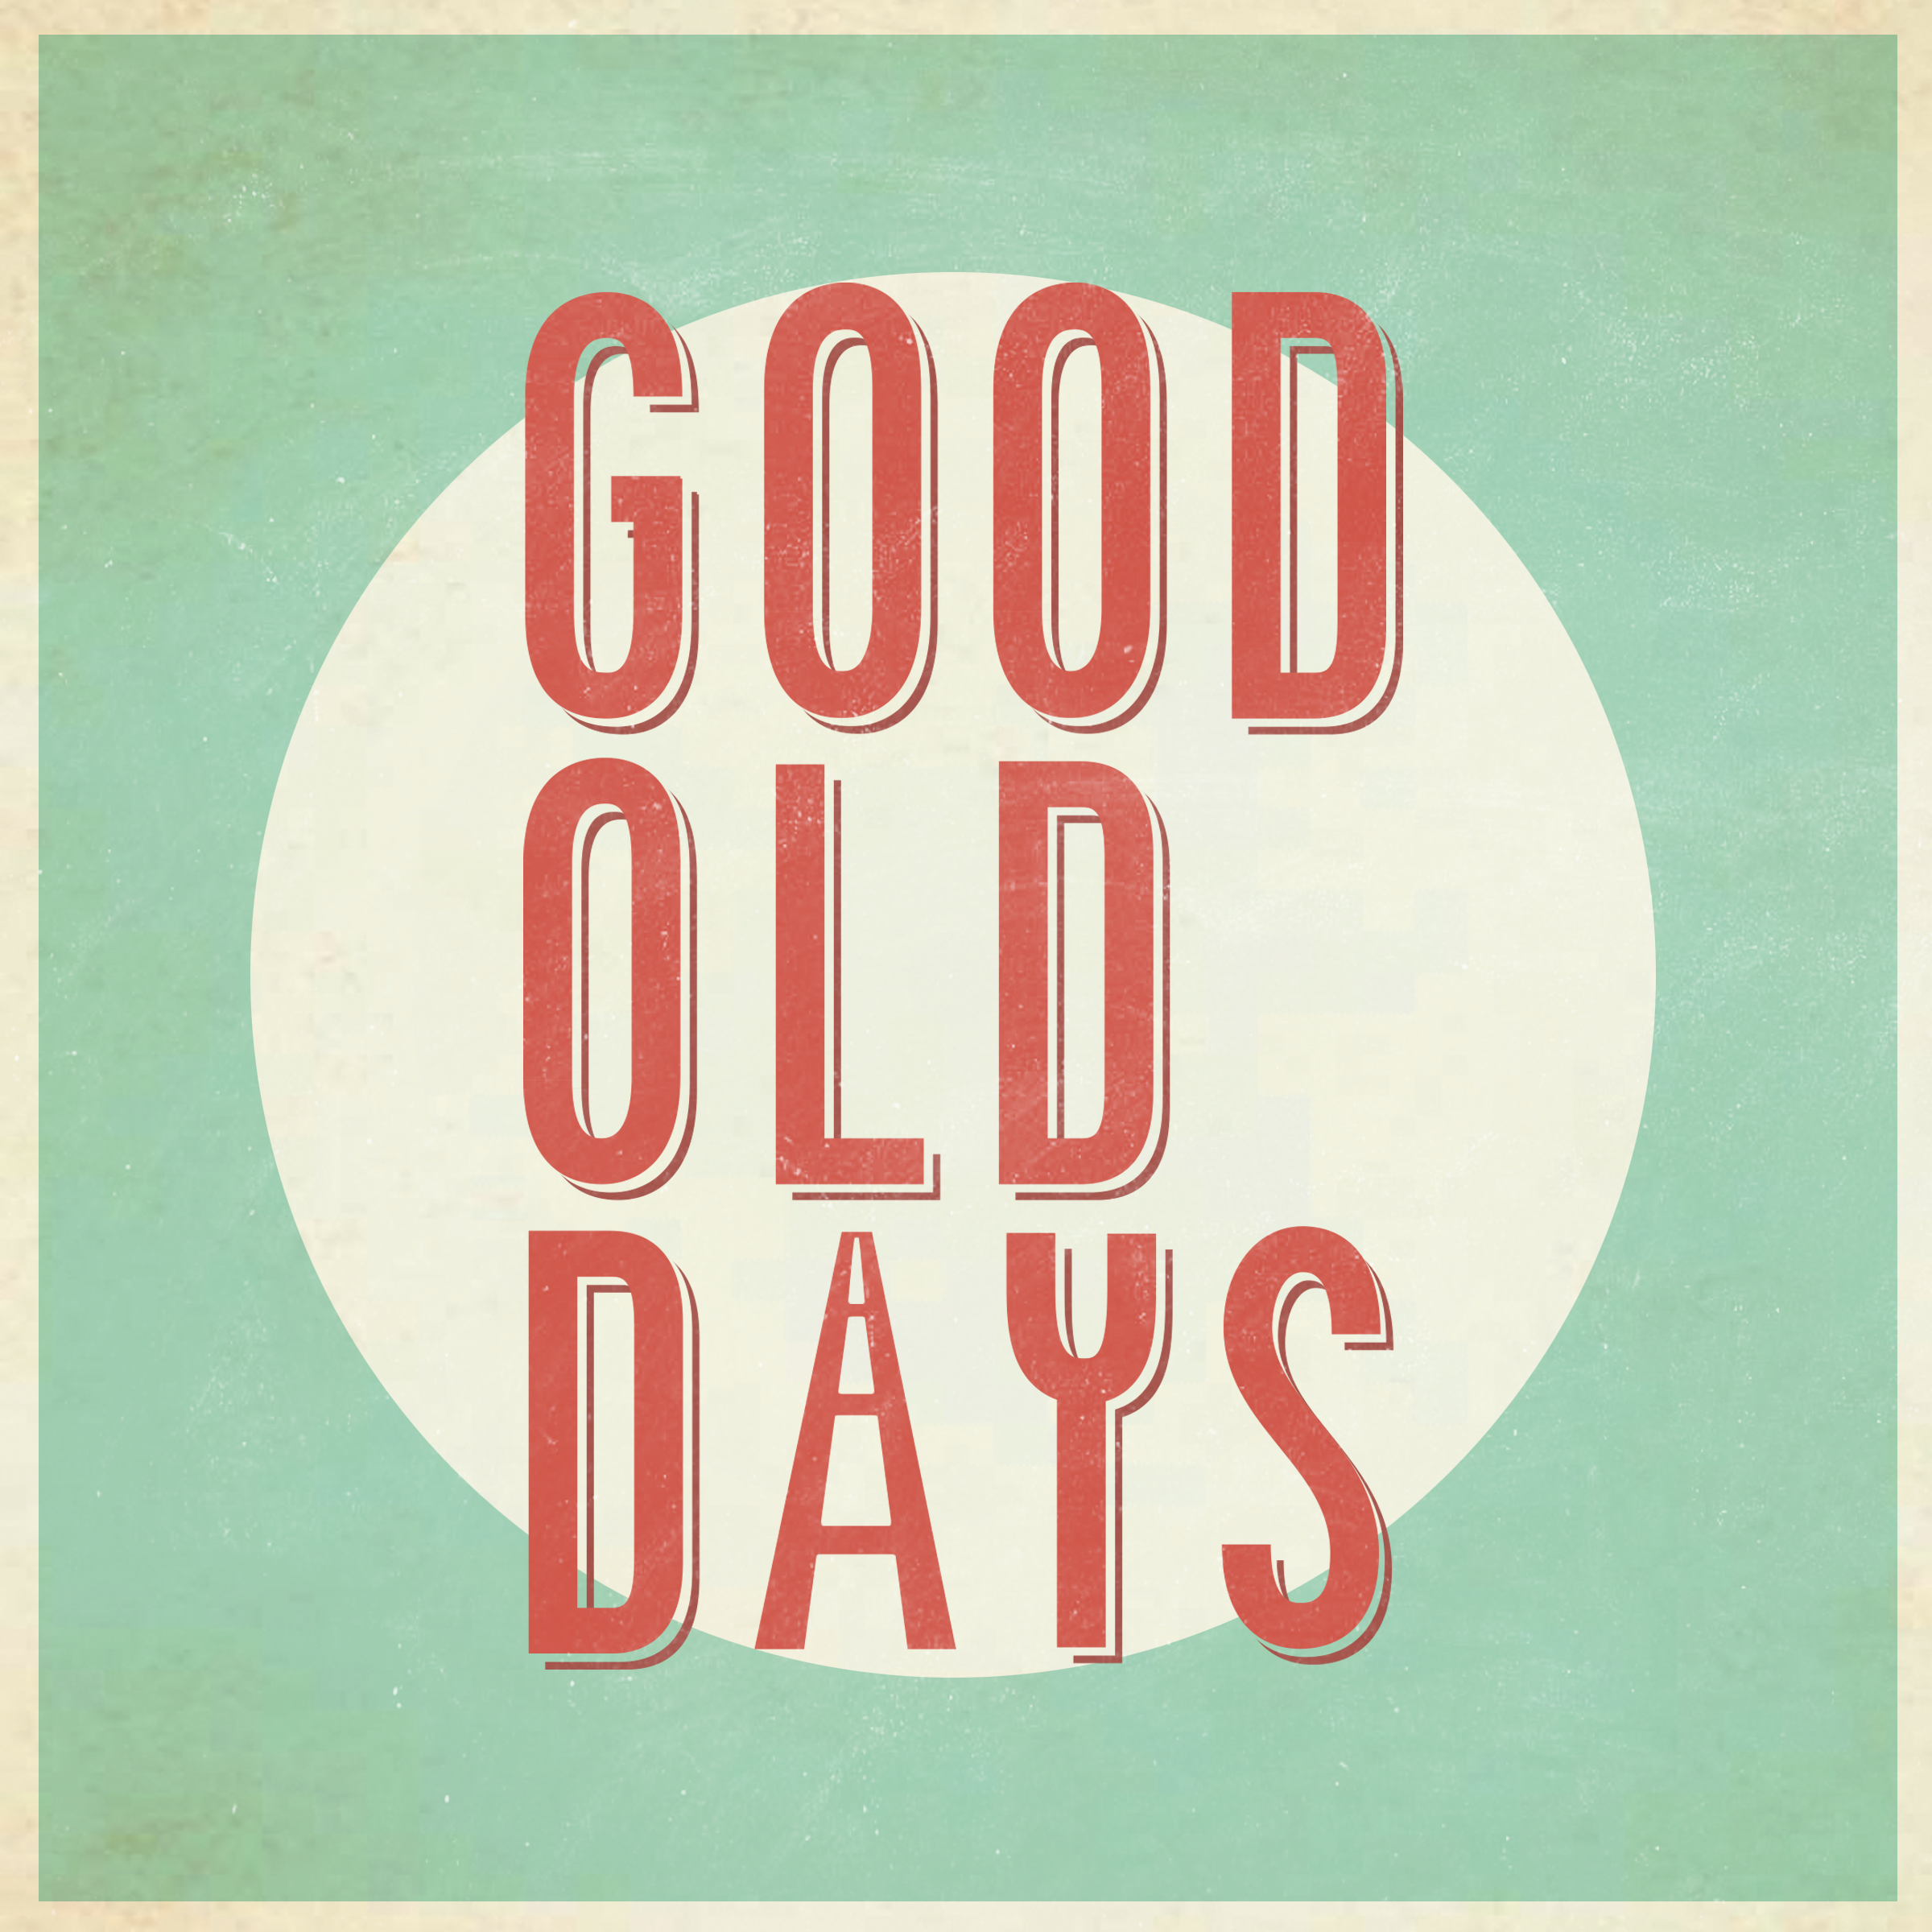 """Good Old Days - Macklemore    On this week's #NewMusicMonday blog, I'm featuring a sentimental track called """"Good Old Days"""" by Macklemore..."""